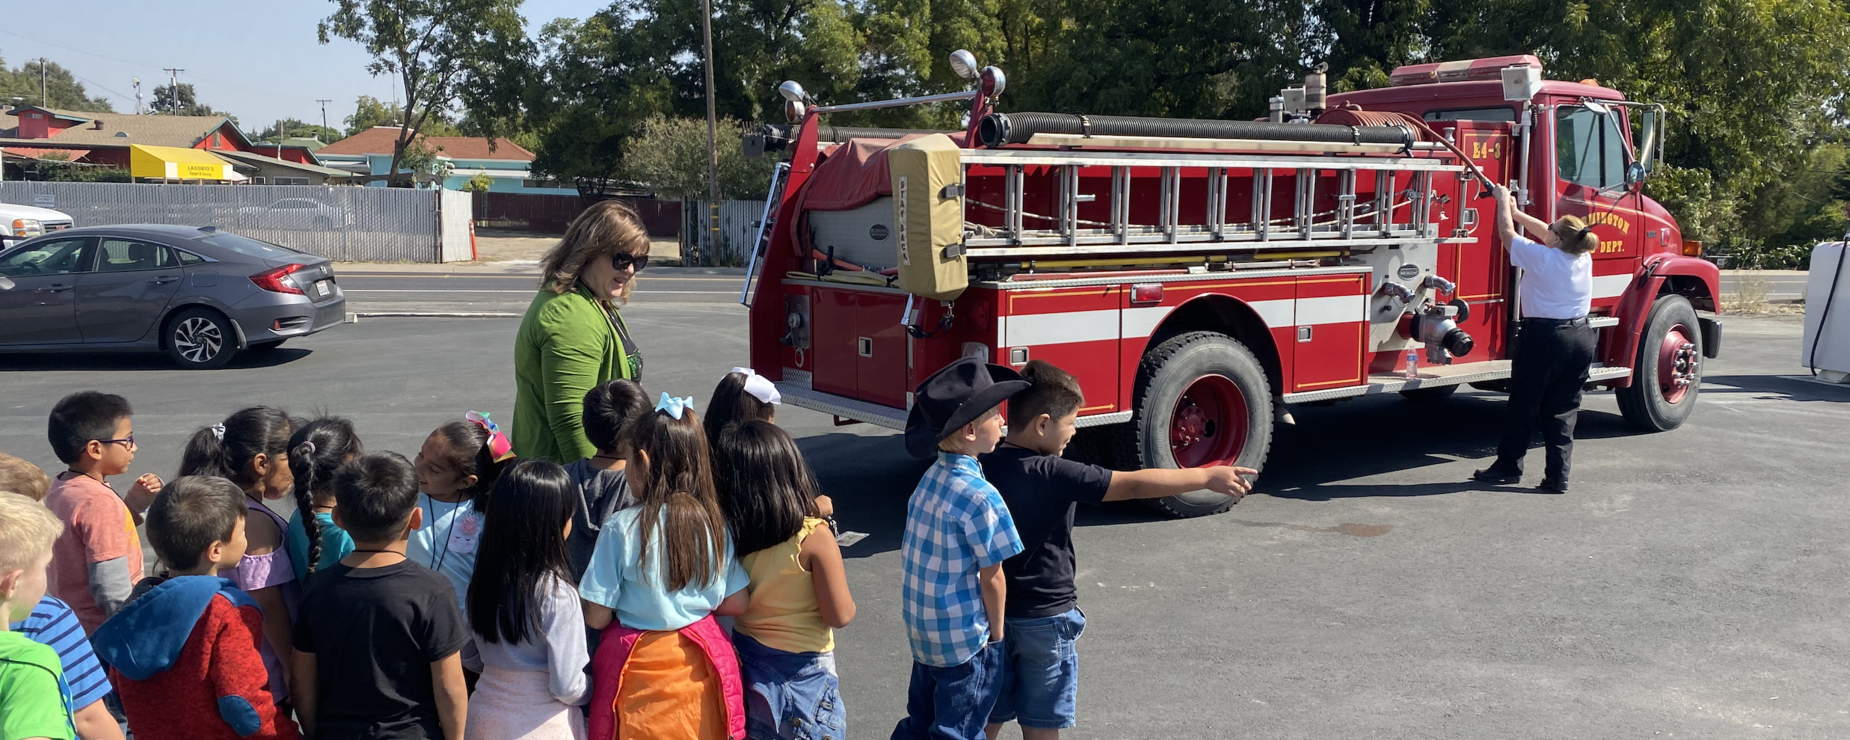 Field trip to the Farmington Fire Department